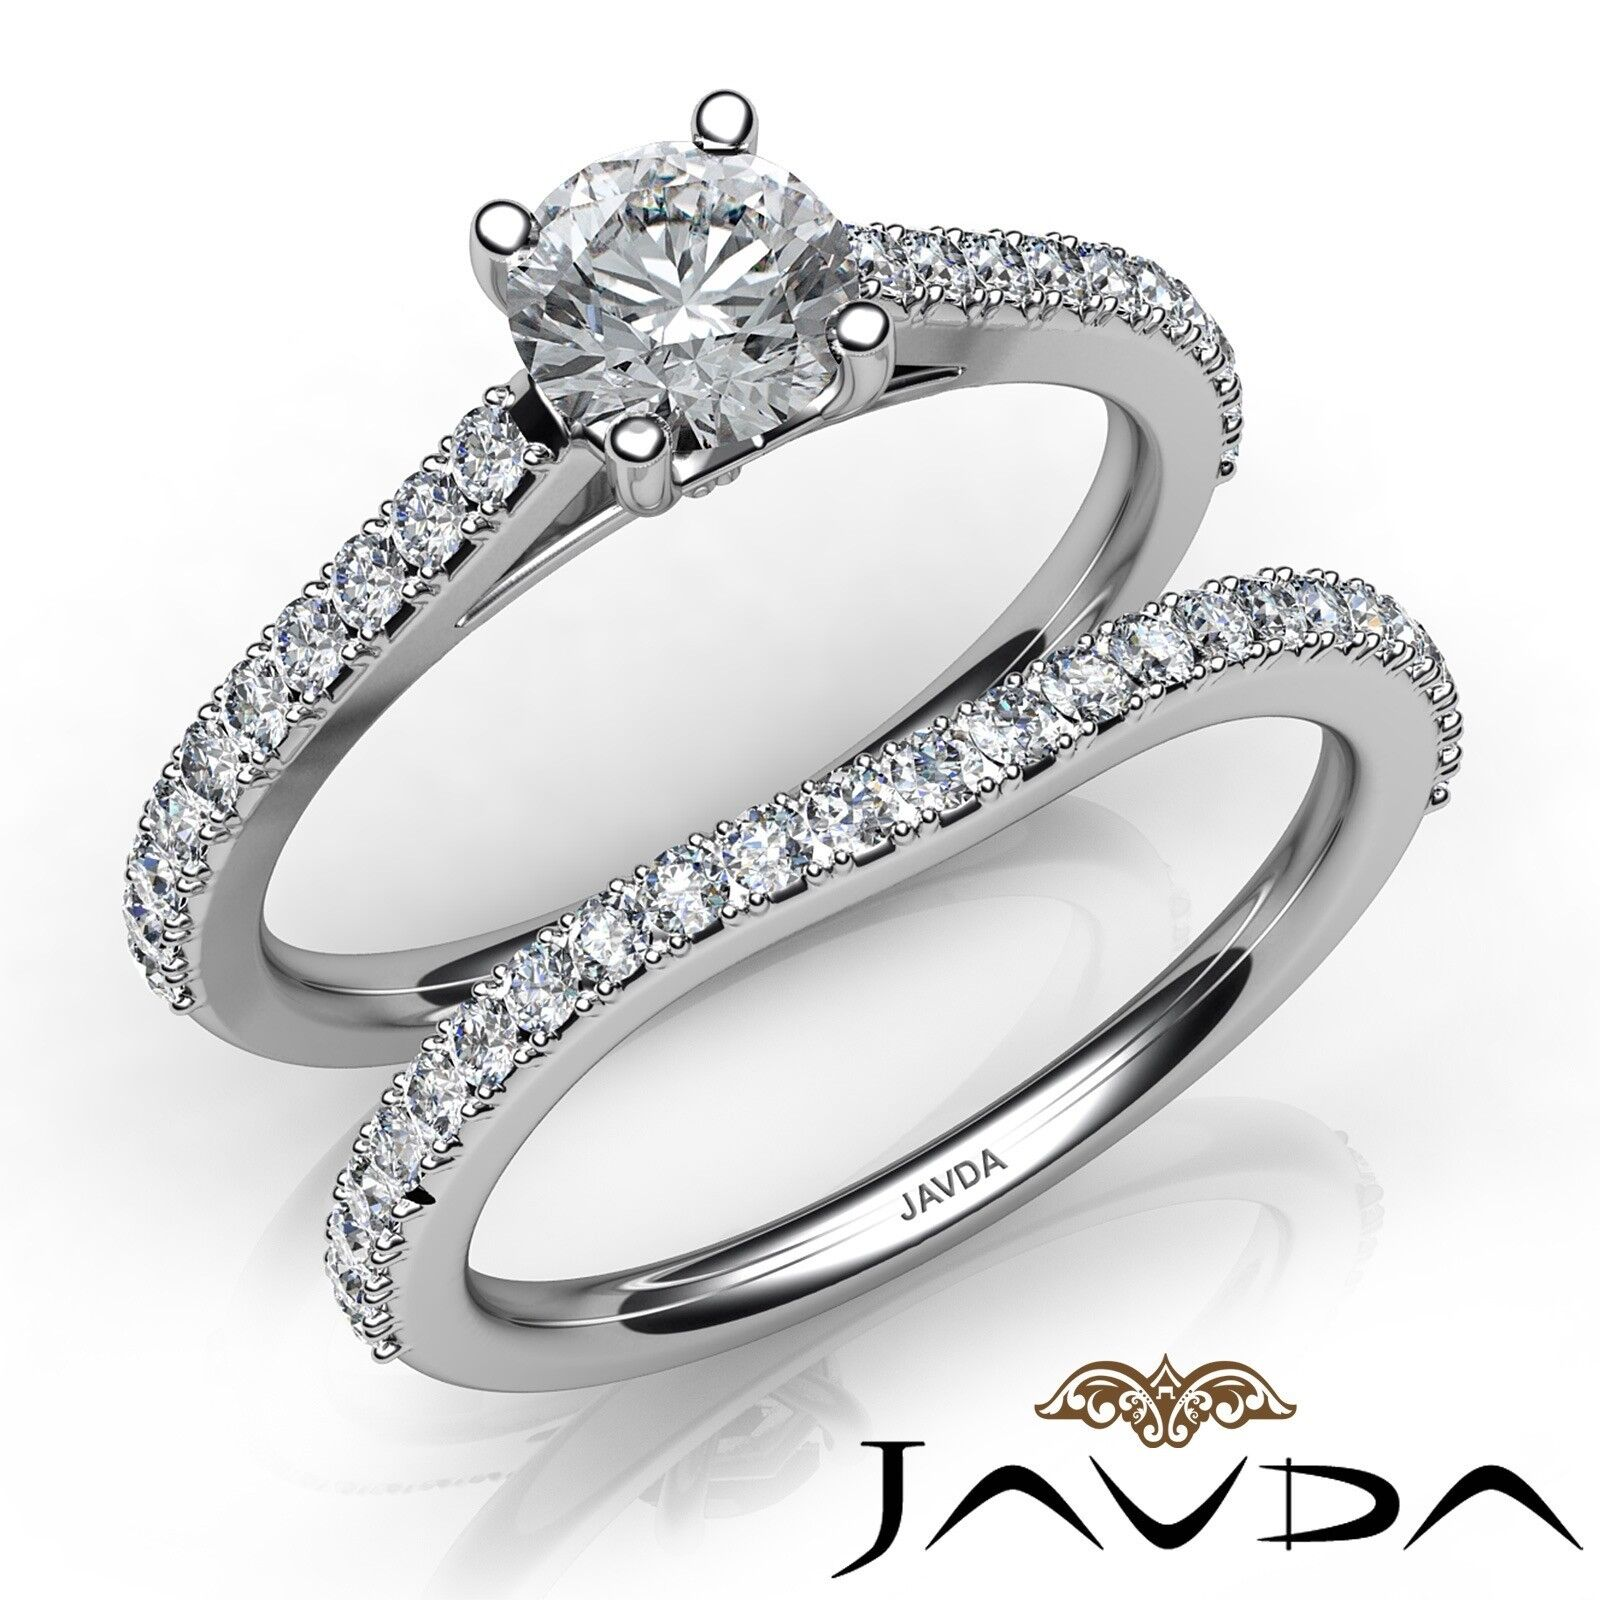 1.4ctw Prong Setting Bridal Set Round Diamond Engagement Ring GIA E-VS2 W Gold